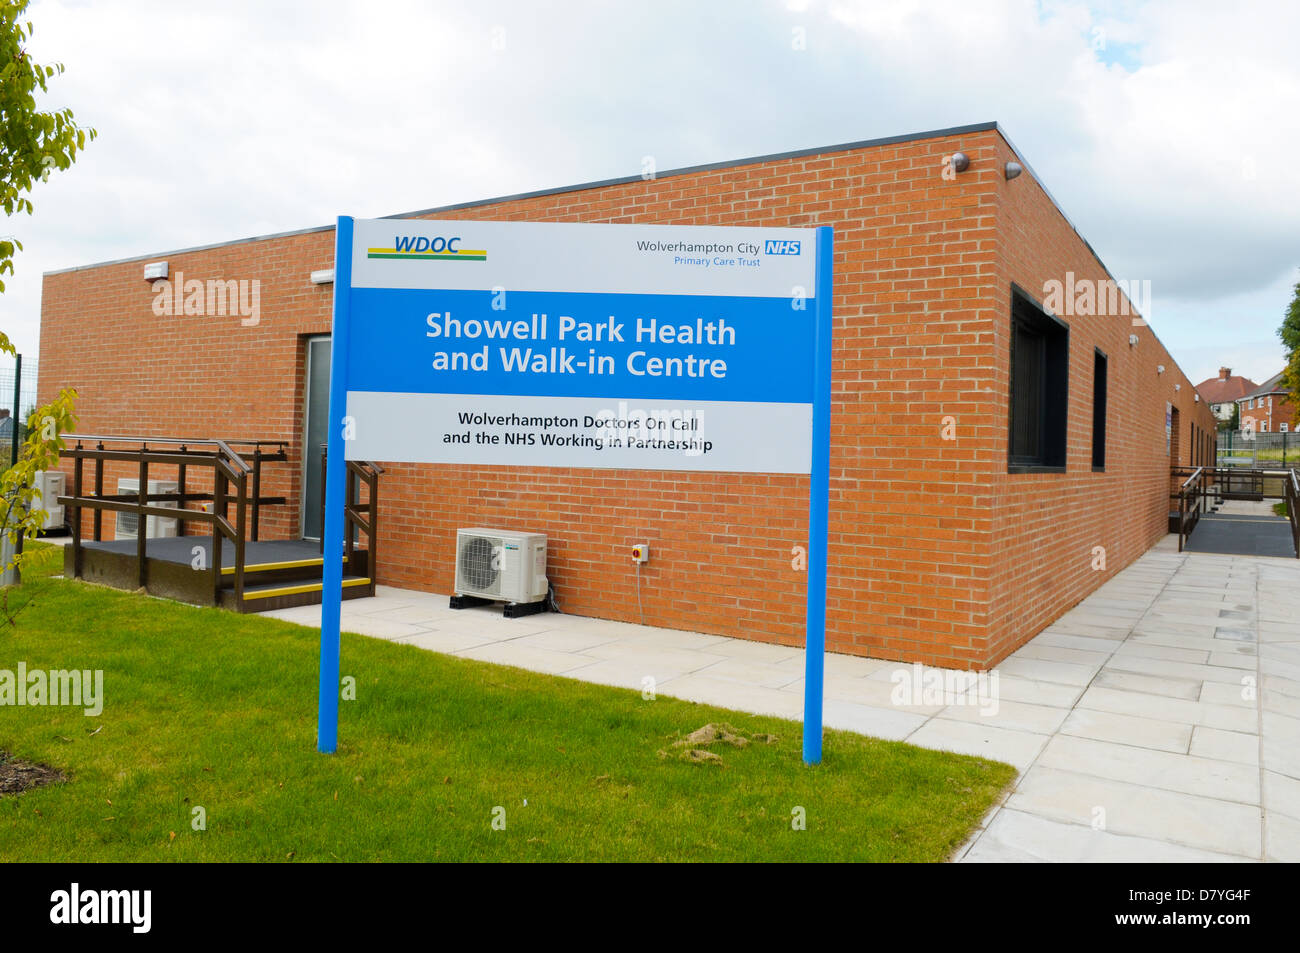 Showell Park Health and Walk-in Centre, Wolverhampton Stock Photo